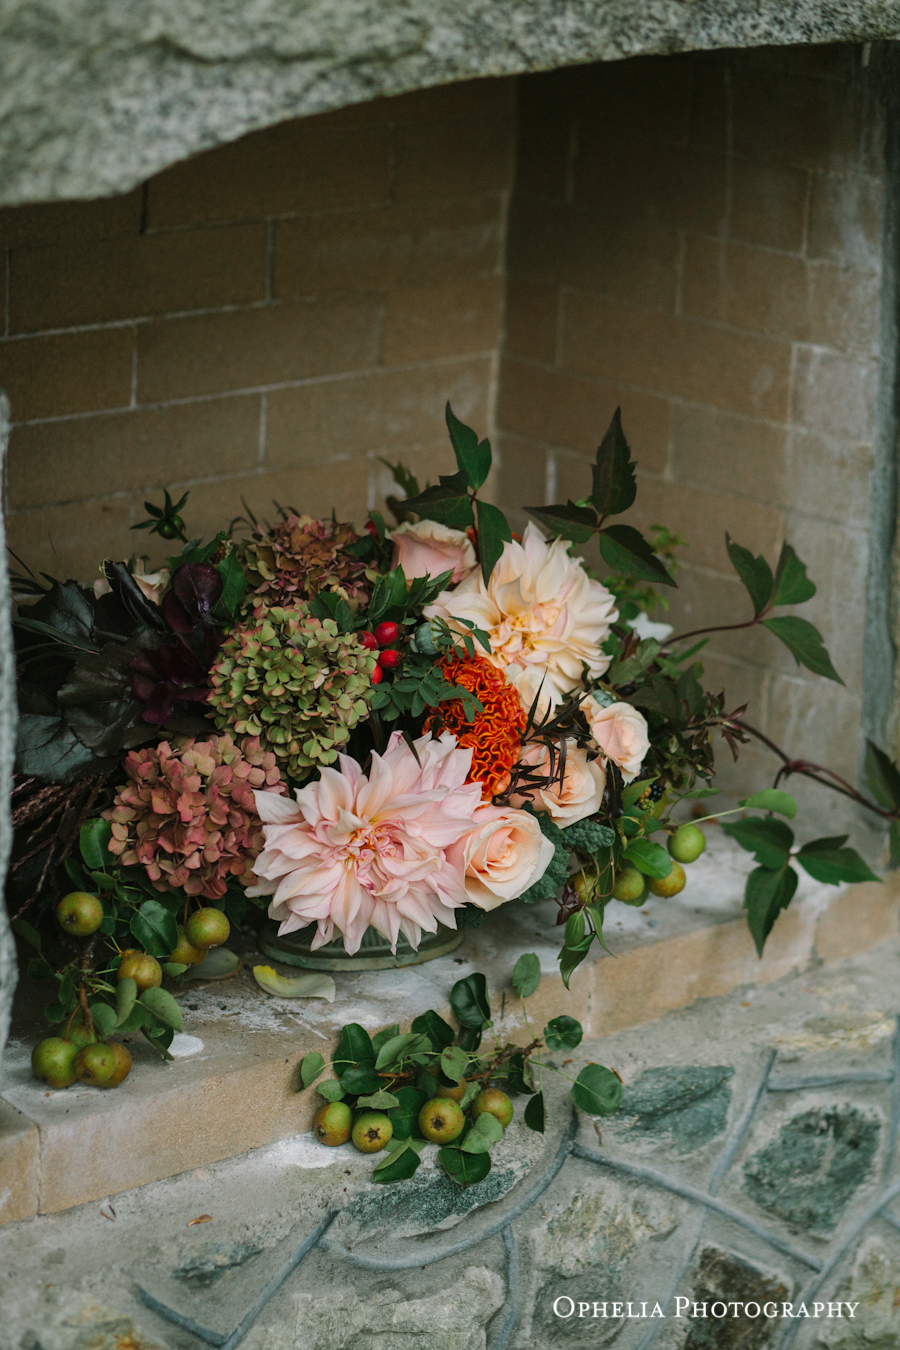 Floral Bouquet Outdoor Fireplace West Coast Weddings Vancouver Island English Garden